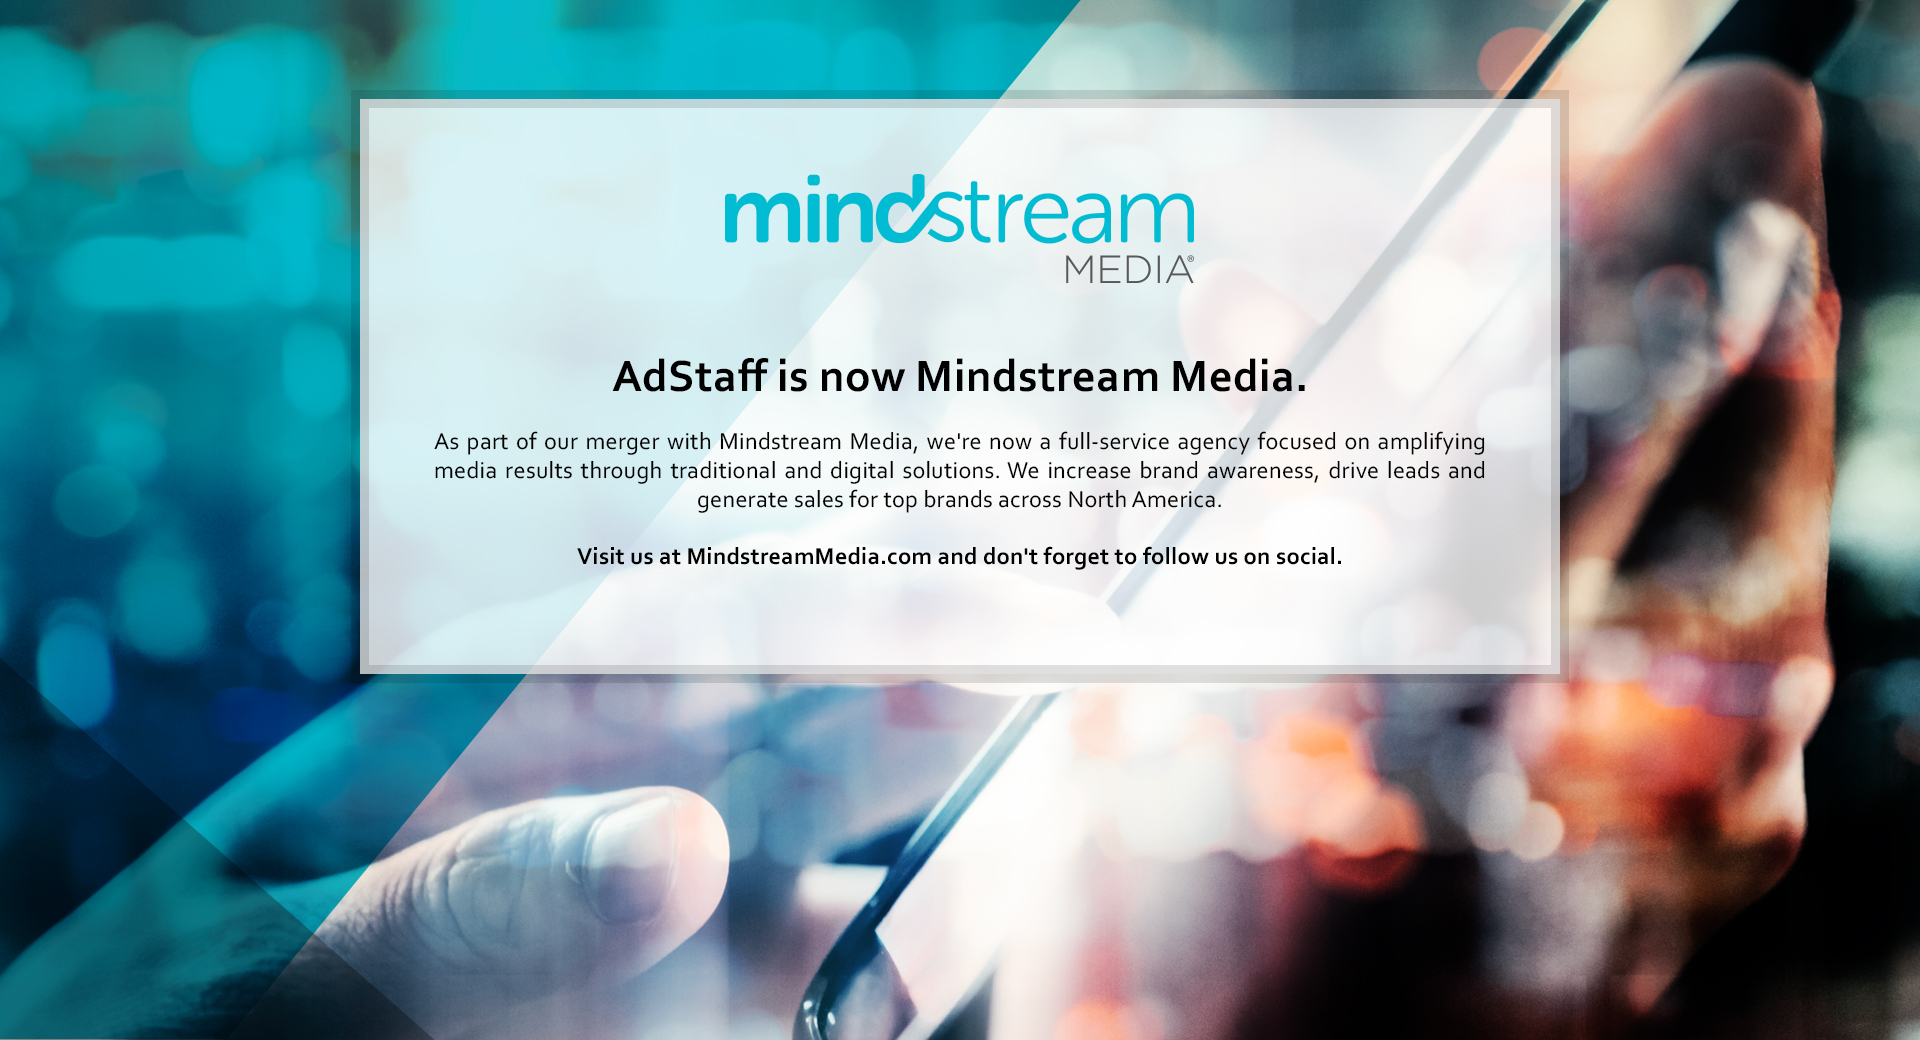 AdStaff is Now Mindstream Media